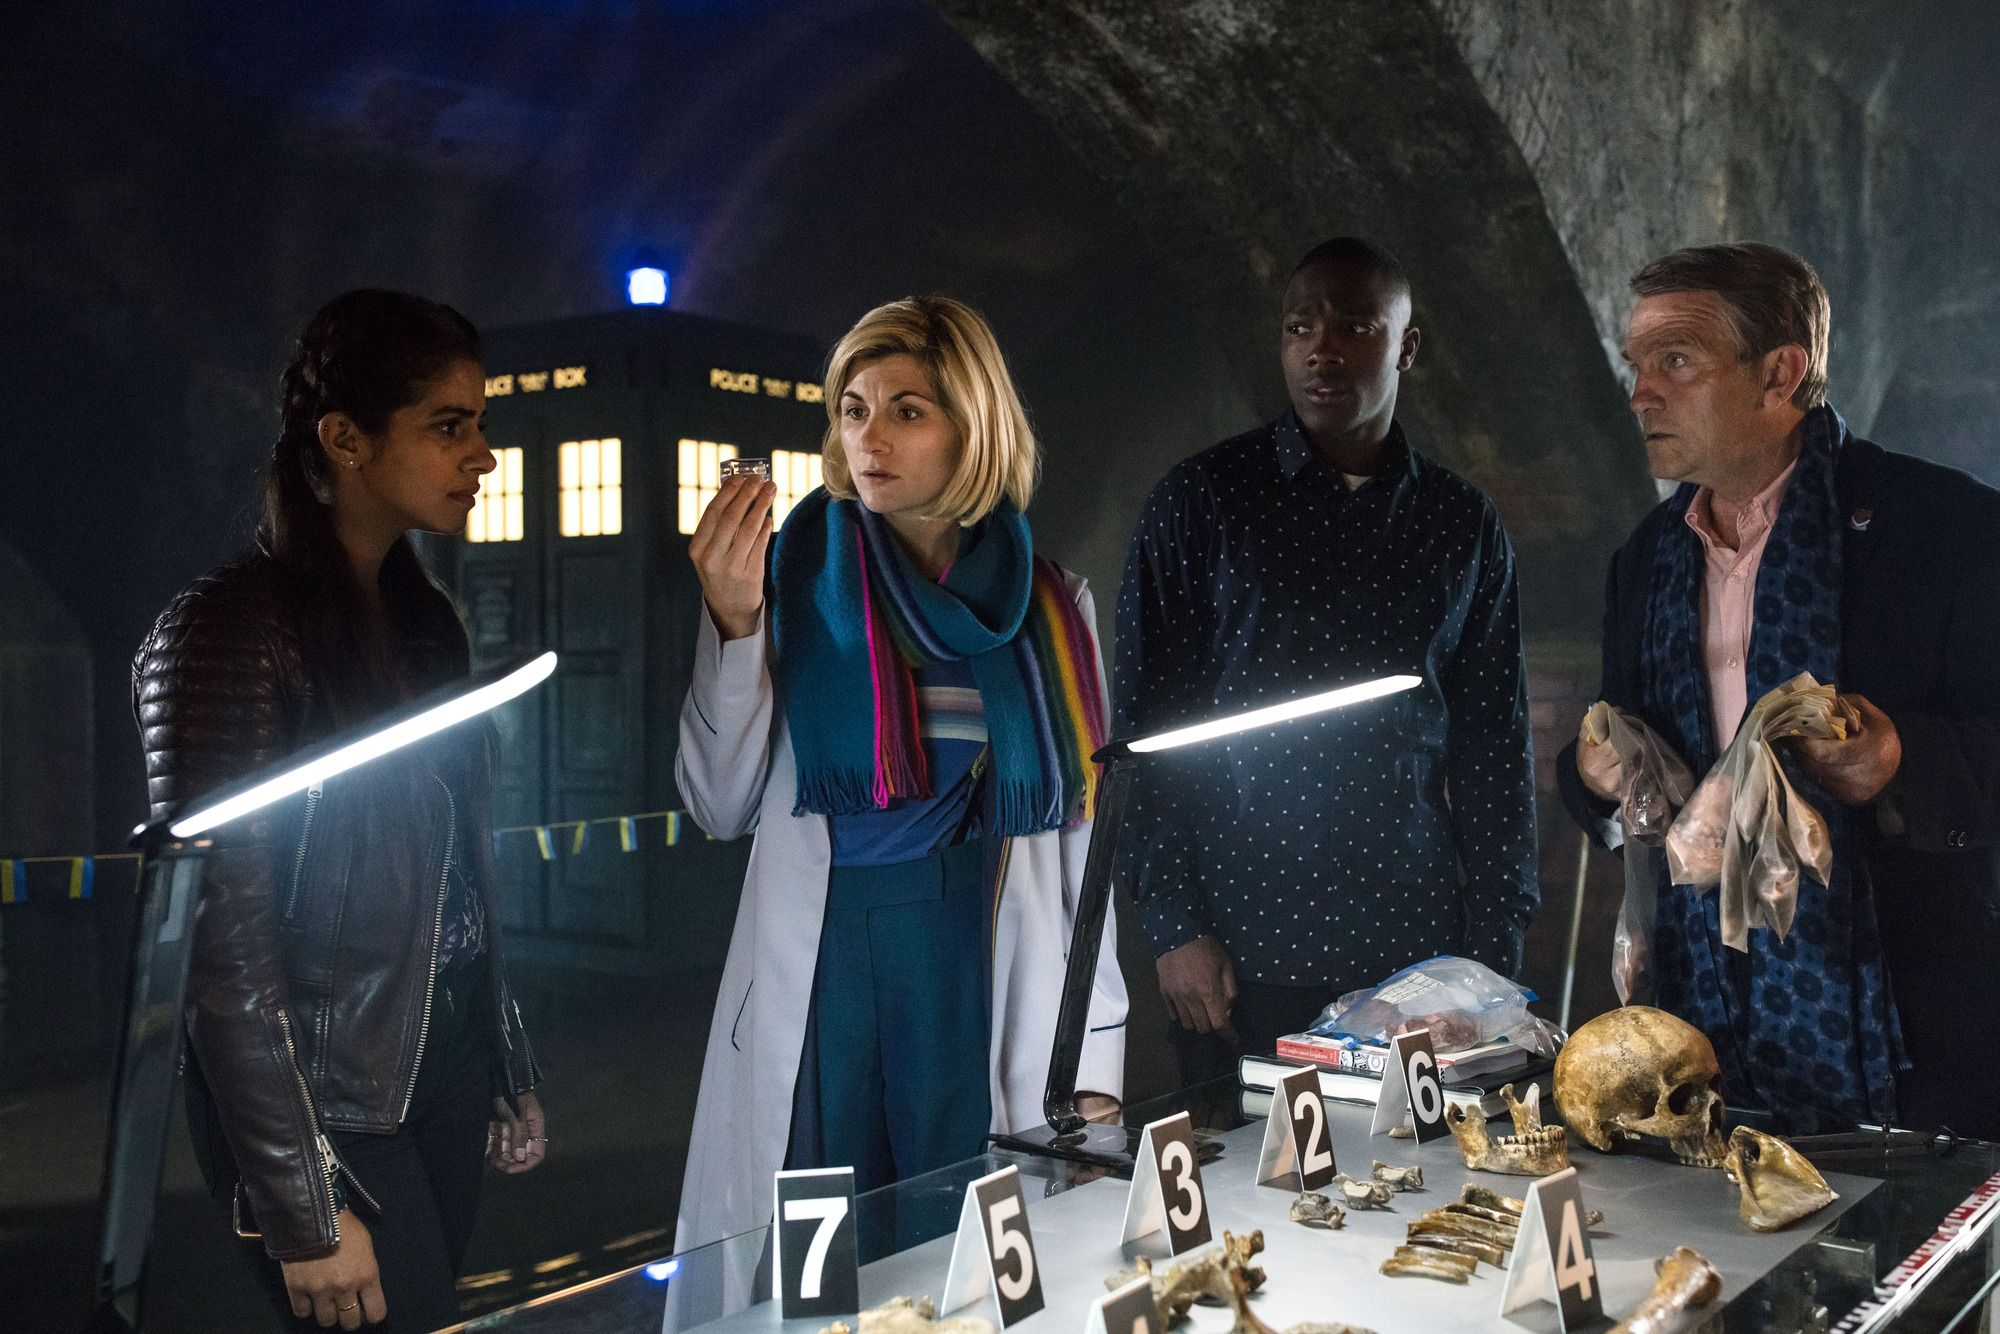 Doctor Who Christmas special 2018 - Doctor Who New Year